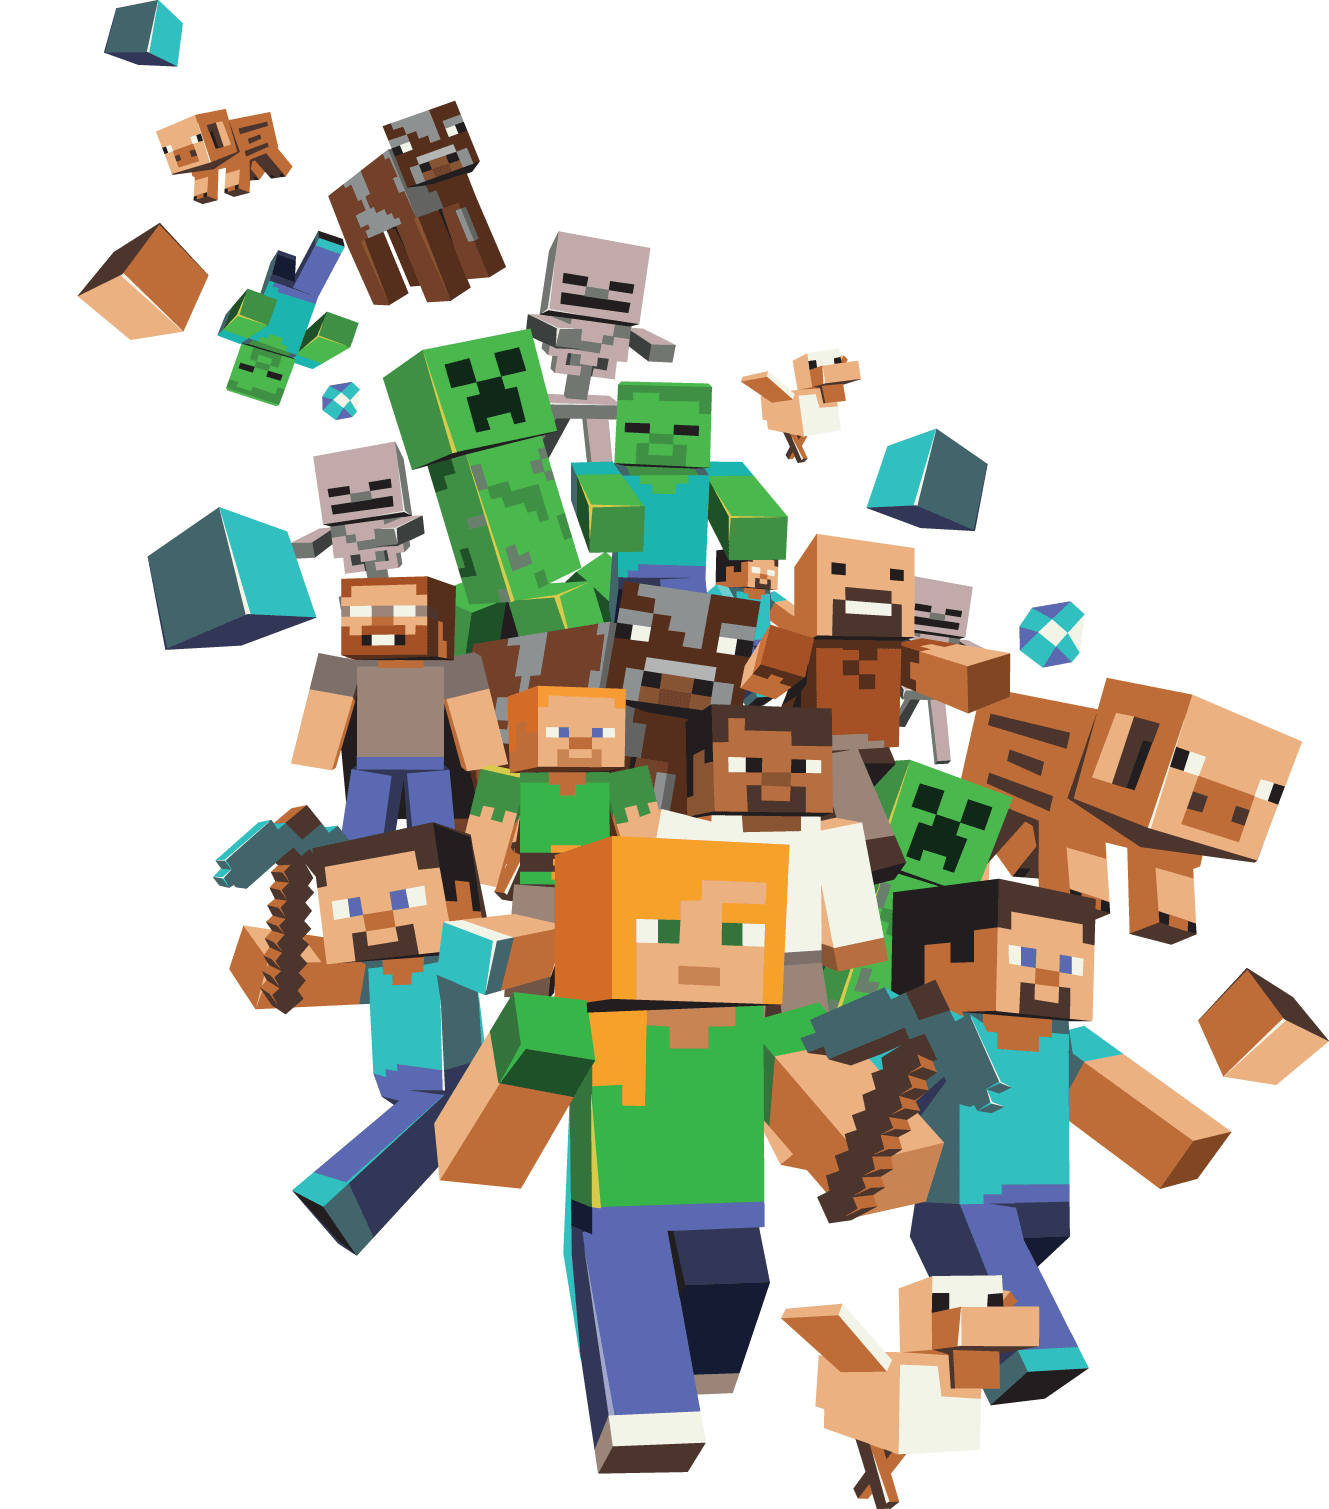 Character Design From The Ground Up Download : Minecraft large group transparent png stickpng